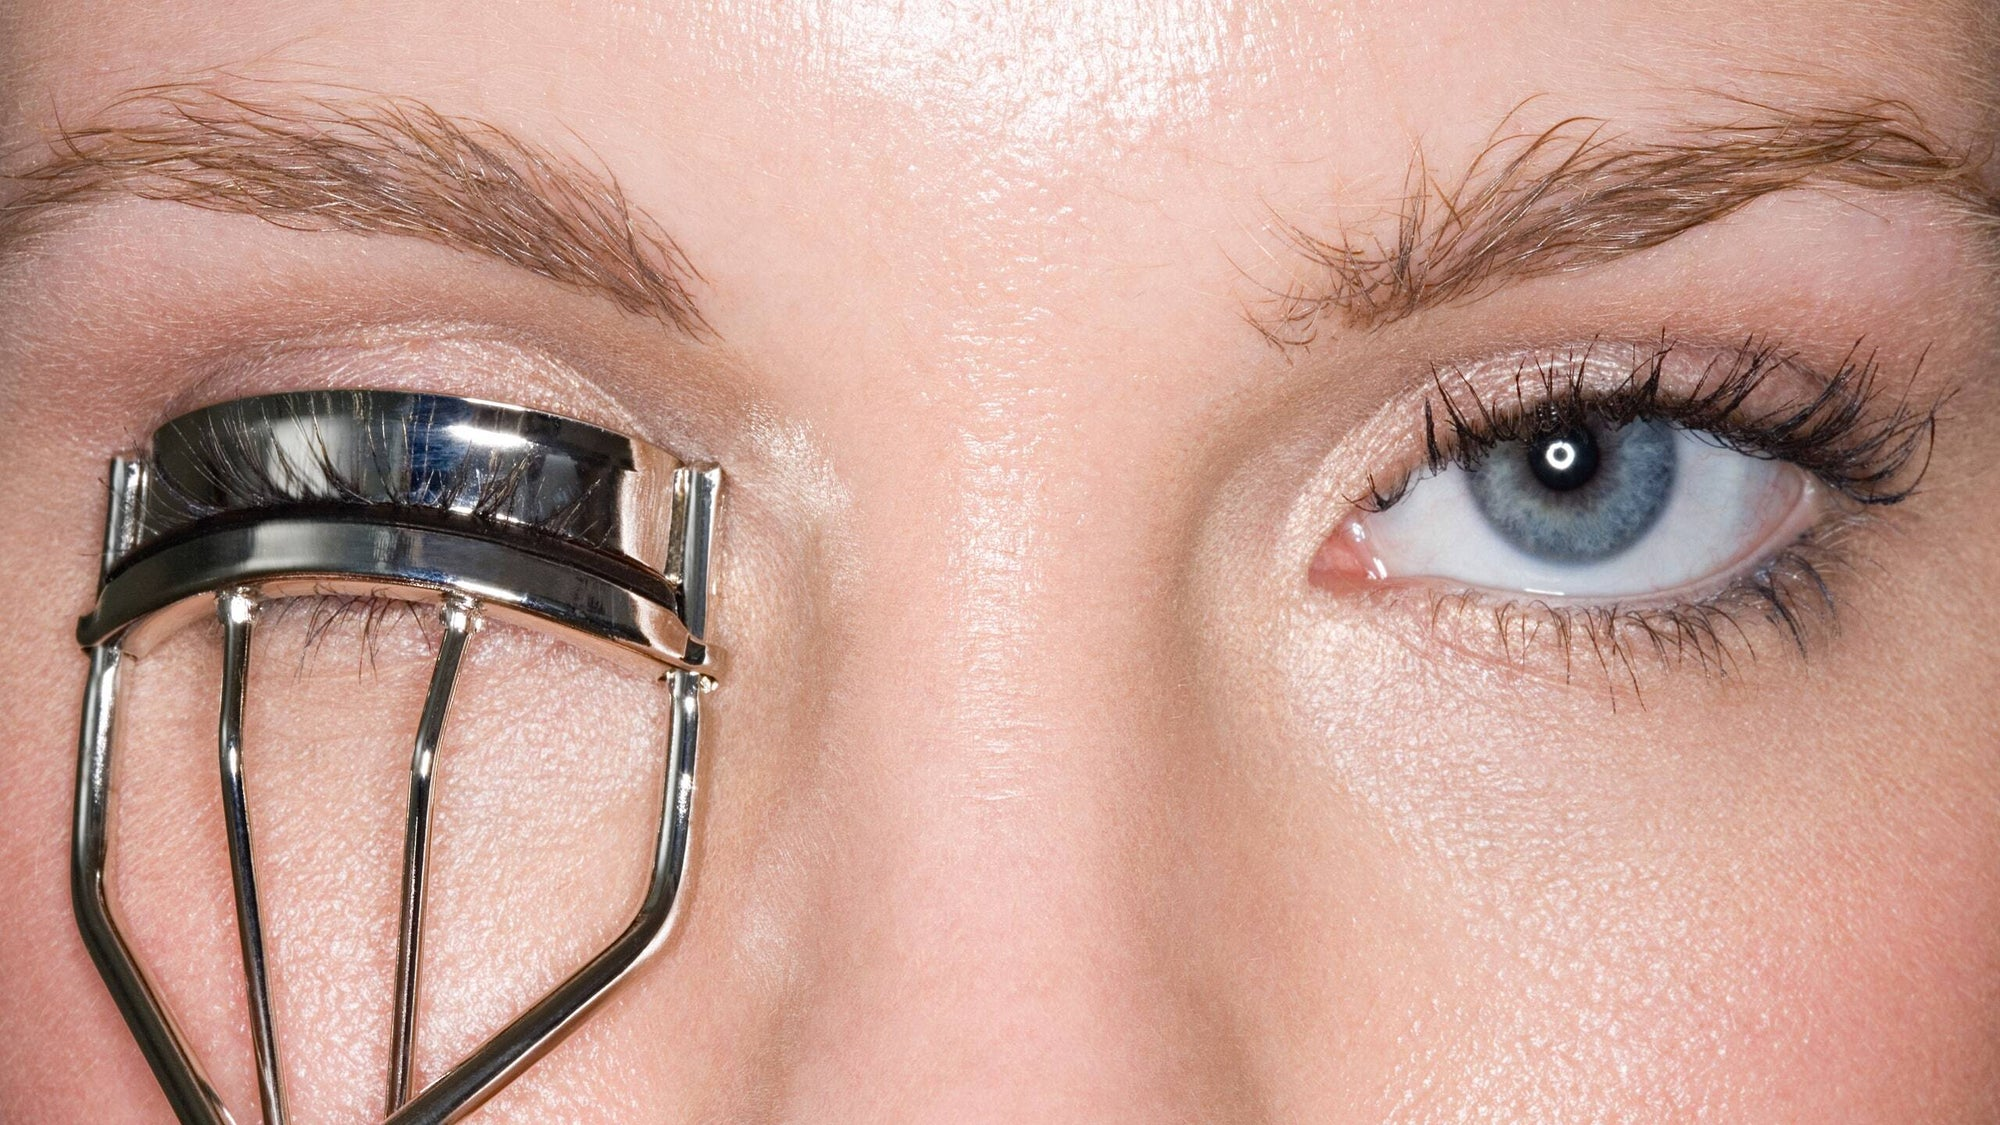 10 Eyelash Do's and Don'ts for Healthy Lashes